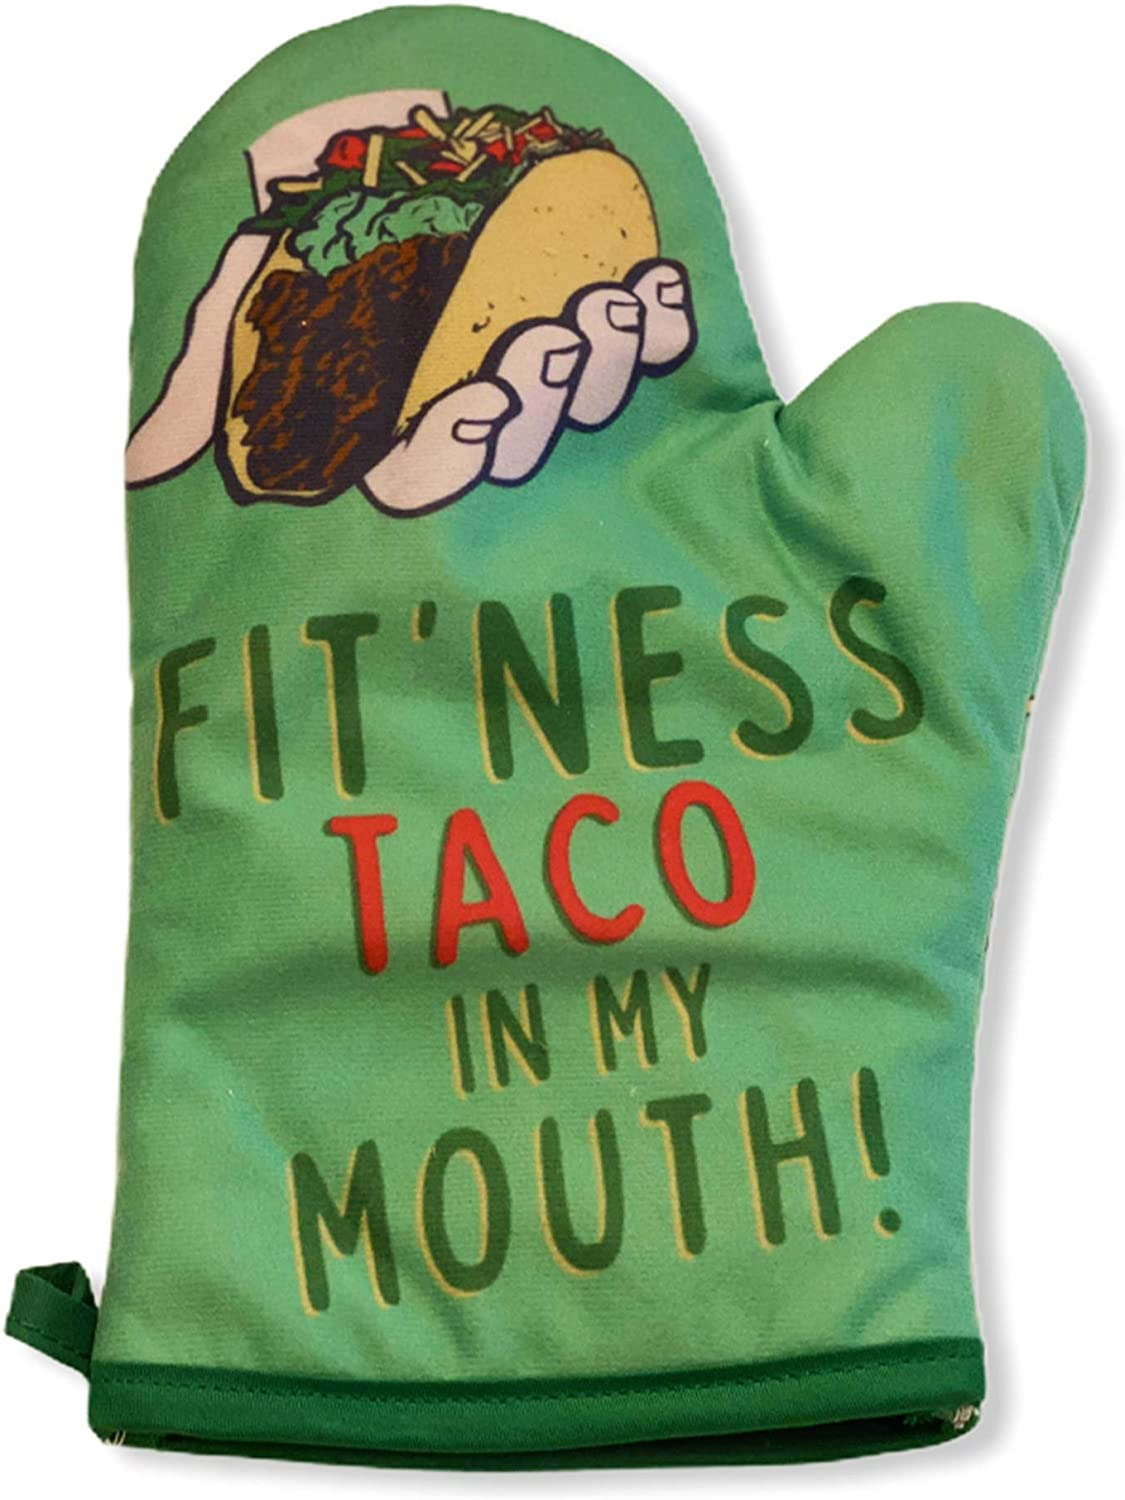 Crazy Dog T-Shirts Fitness Taco Funny Kitchen Apron and Oven Mitts Humorous Gym Graphic Novelty Cooking Accessories (Oven Mitt)